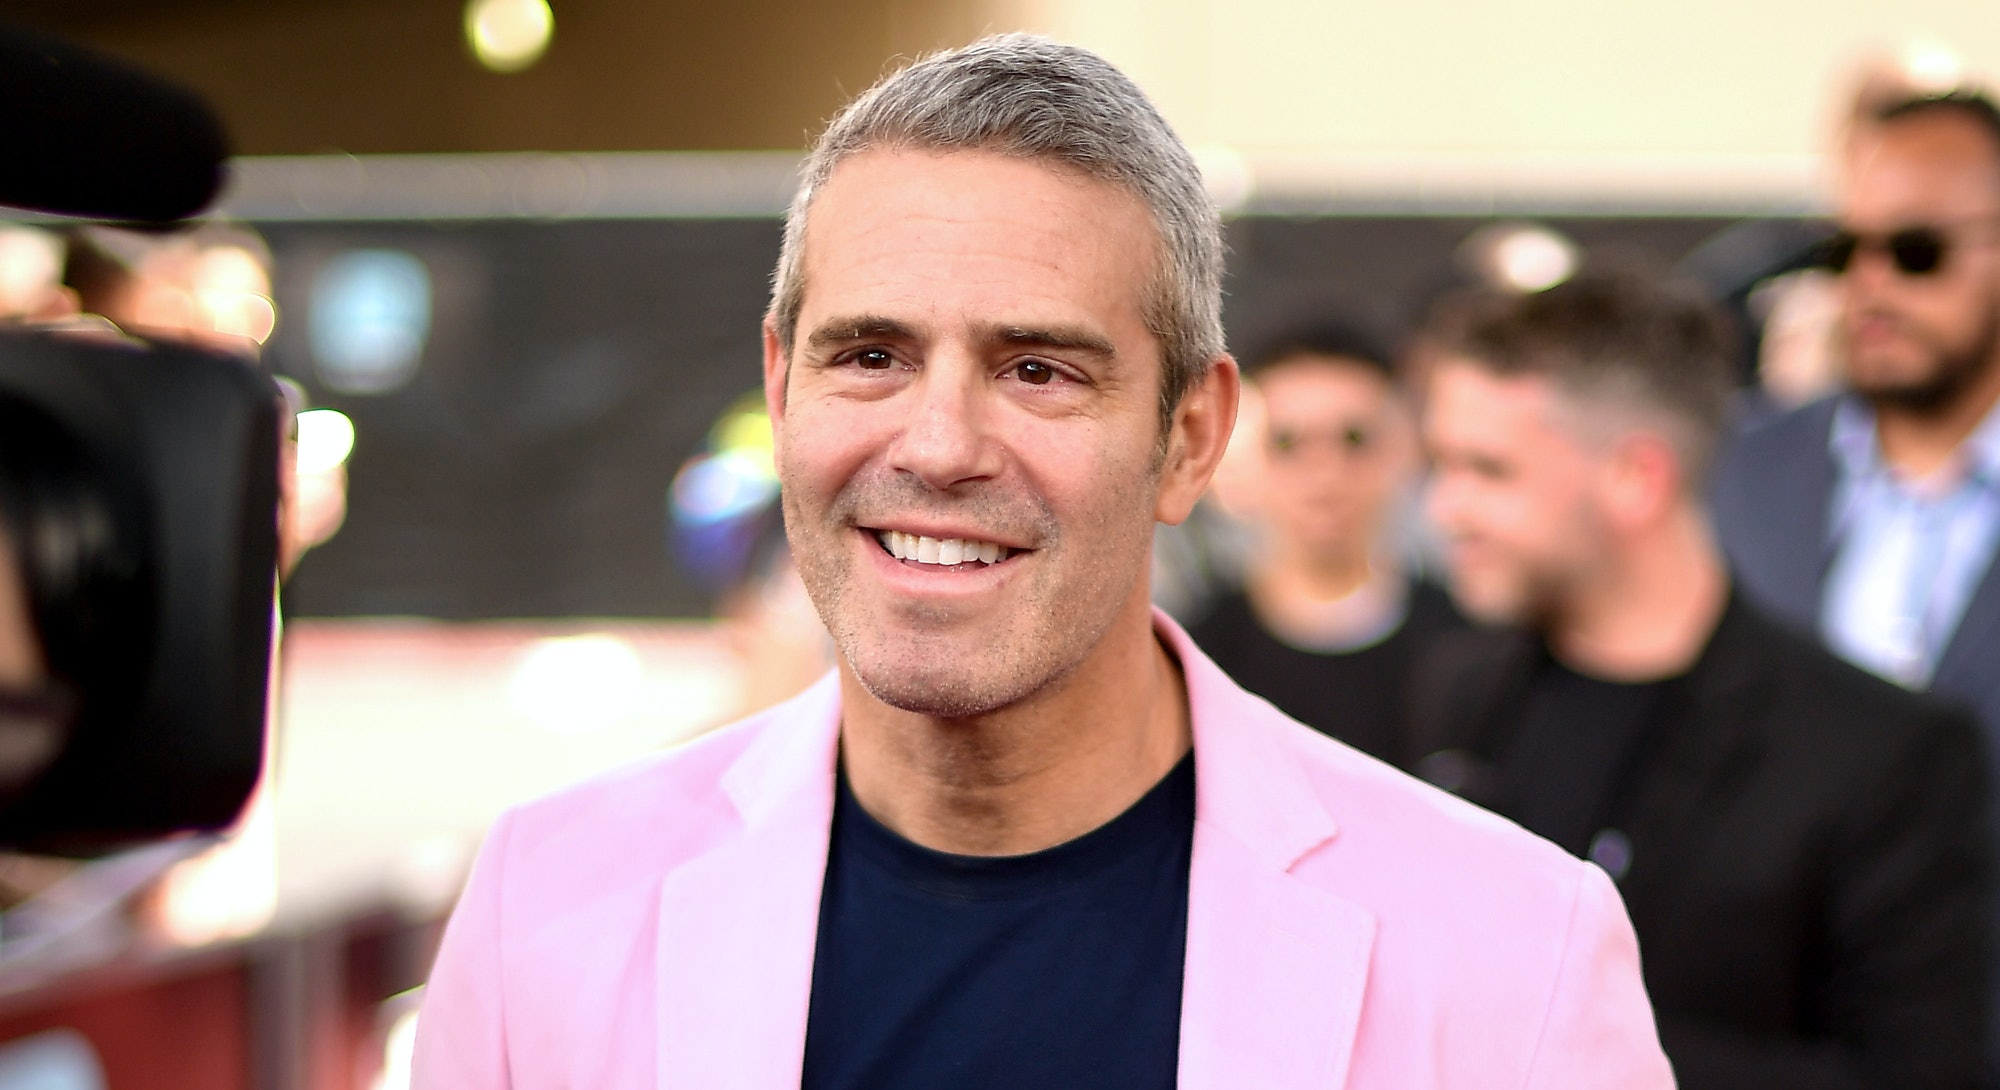 LAS VEGAS, NV - MAY 20:  TV personality-producer Andy Cohen attends the 2018 Billboard Music Awards ...